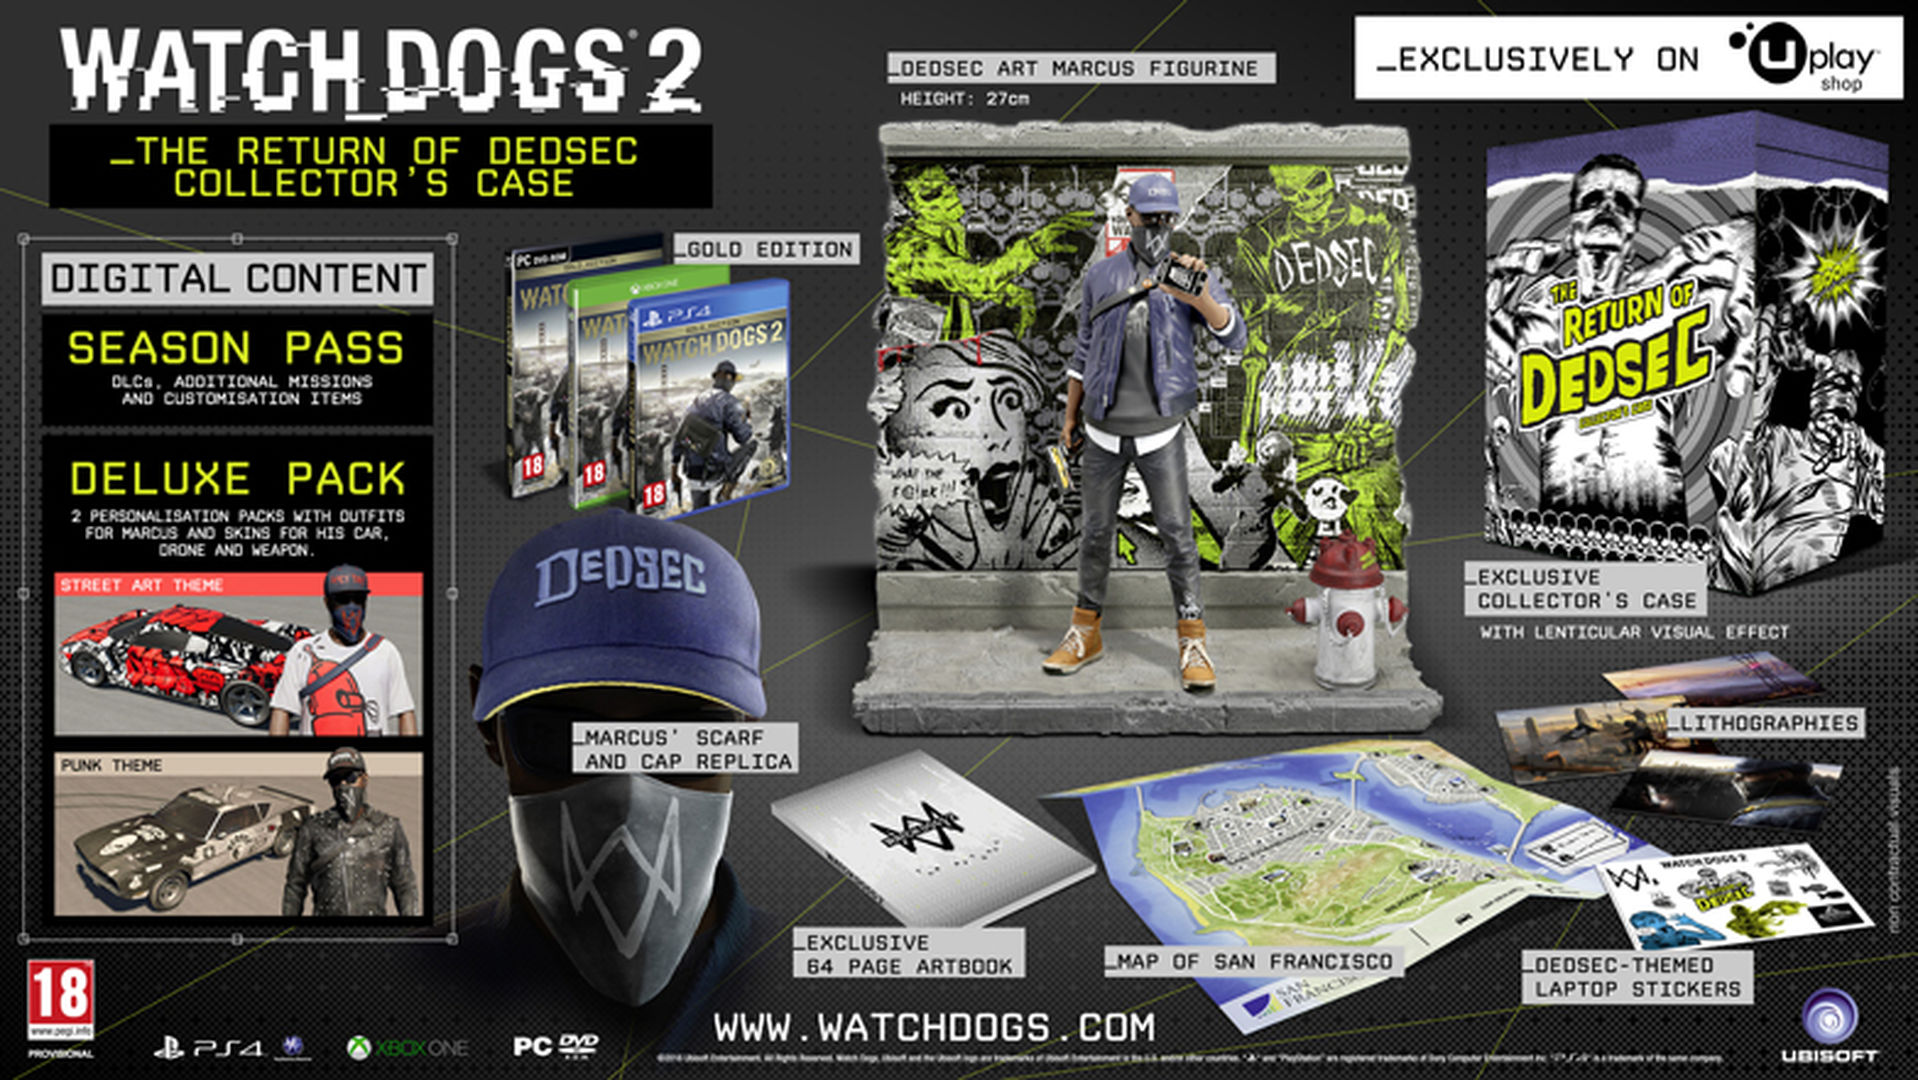 Watch Dogs 2 Official Playstation Store Pre Order: Watch Dogs 2 Collector's Editions AboutGame Playing Info